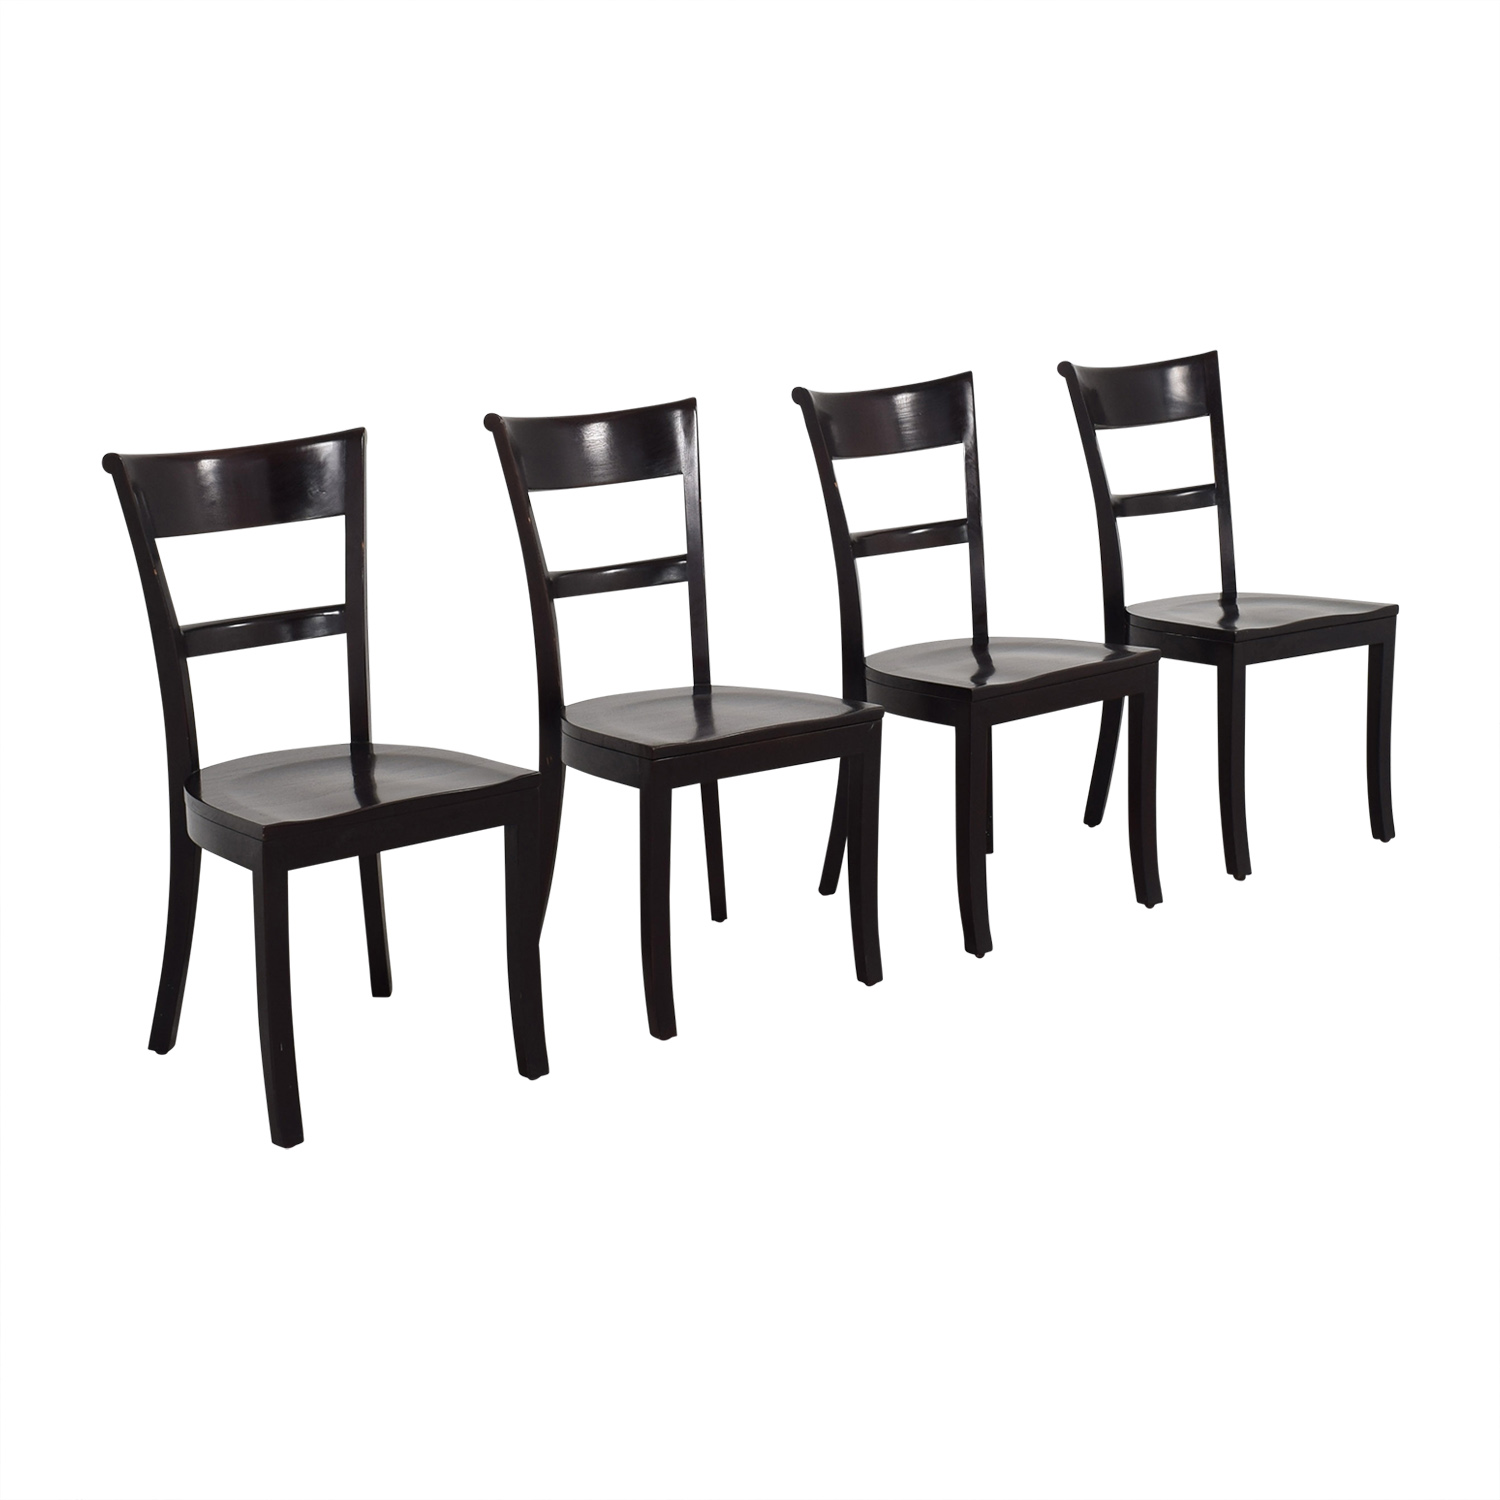 buy Crate & Barrel Dining Side Chairs Crate & Barrel Dining Chairs